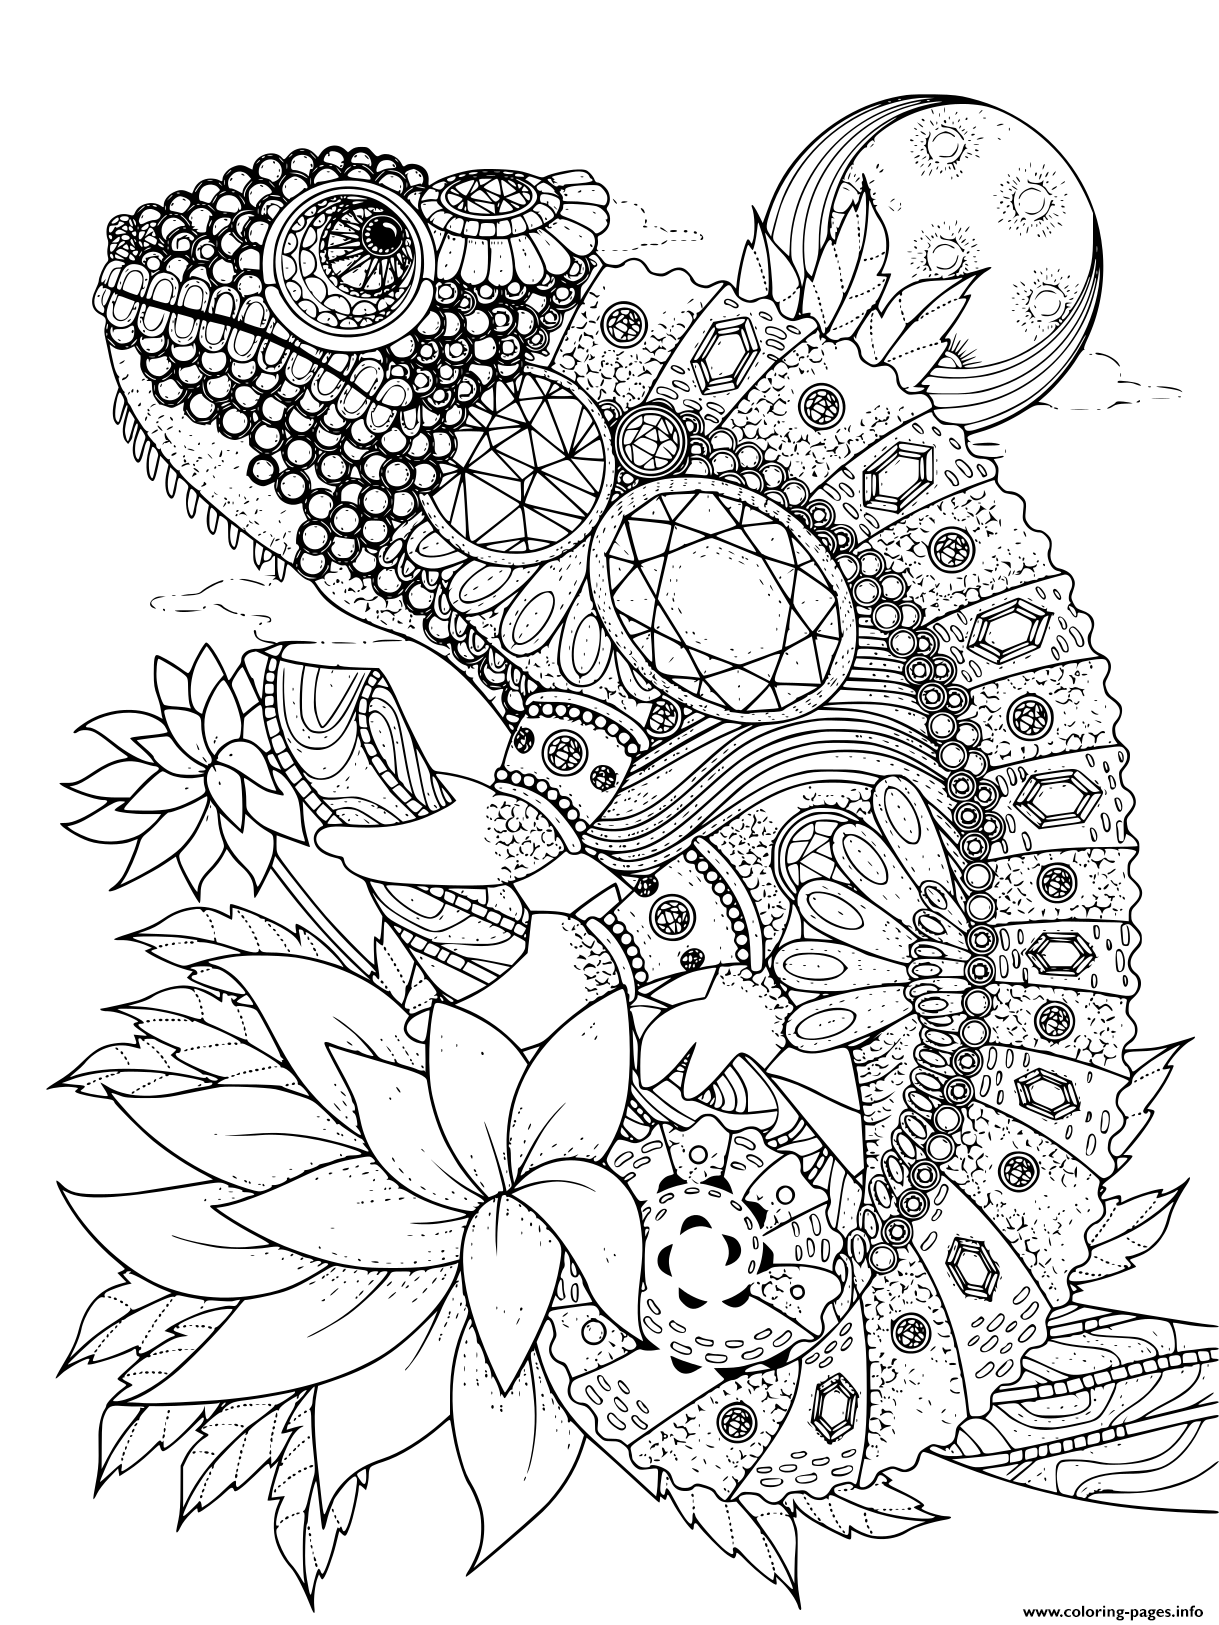 Adult Animal Chameleon Decorated To Jewelry Coloring Pages